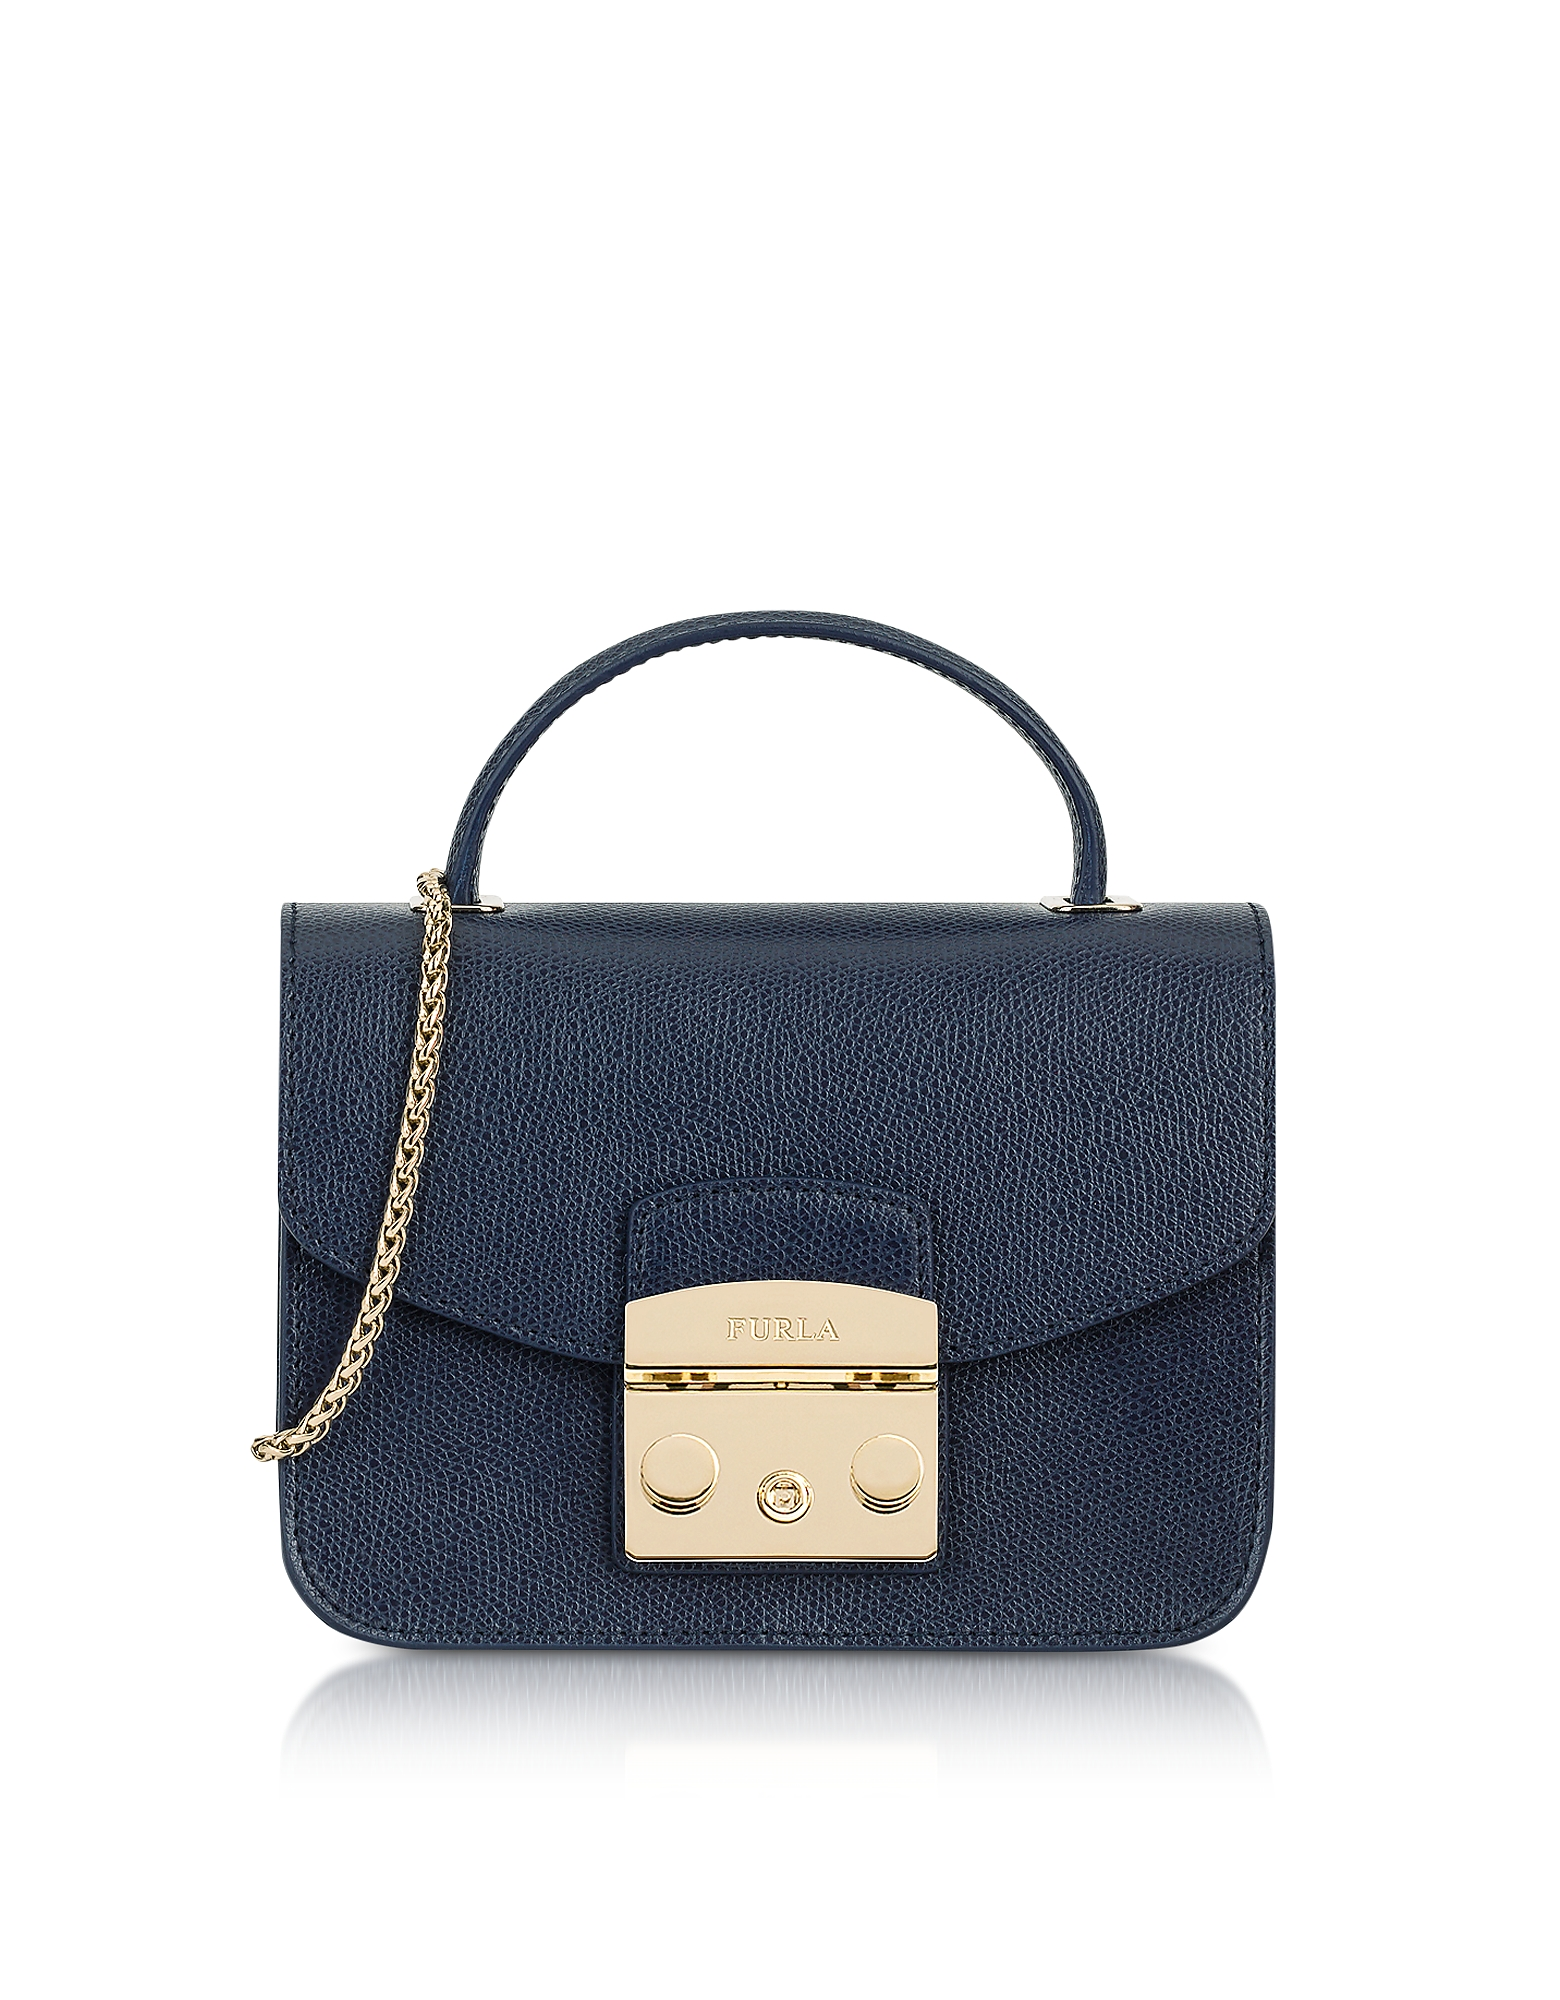 Furla Handbags, Navy Blue Metropolis Mini Top Handle Crossbody Bag